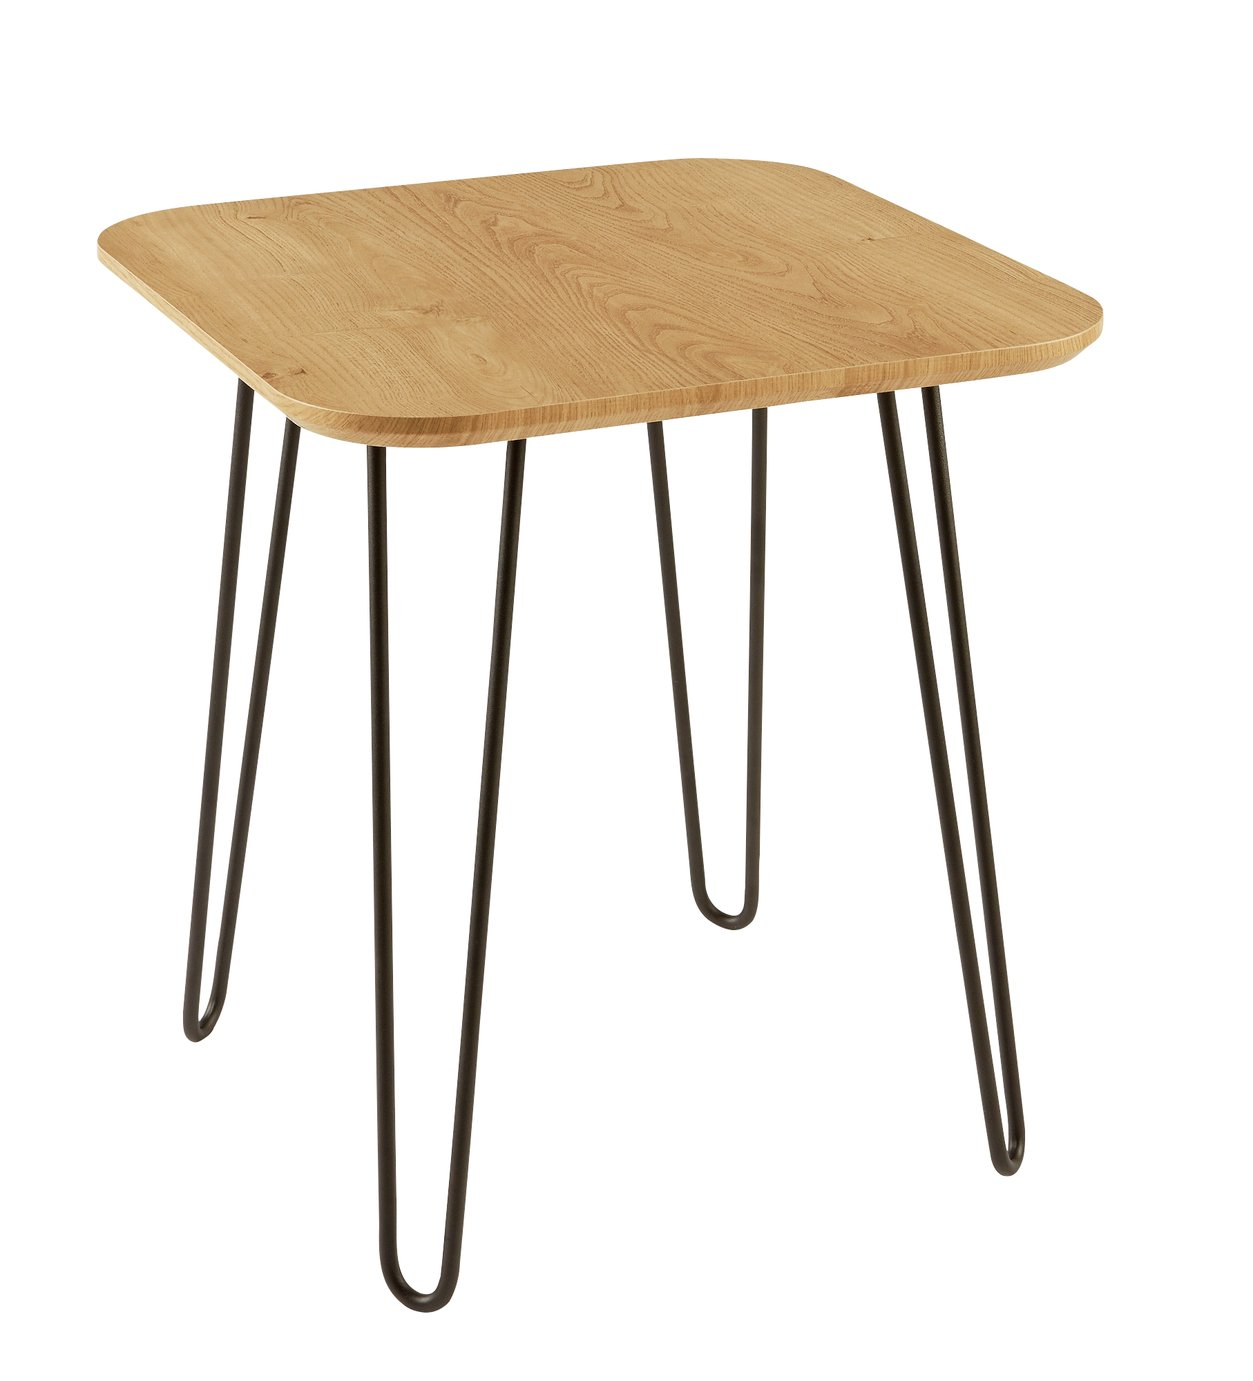 Argos Home Klark Hairpin End Table - Light Wood Effect